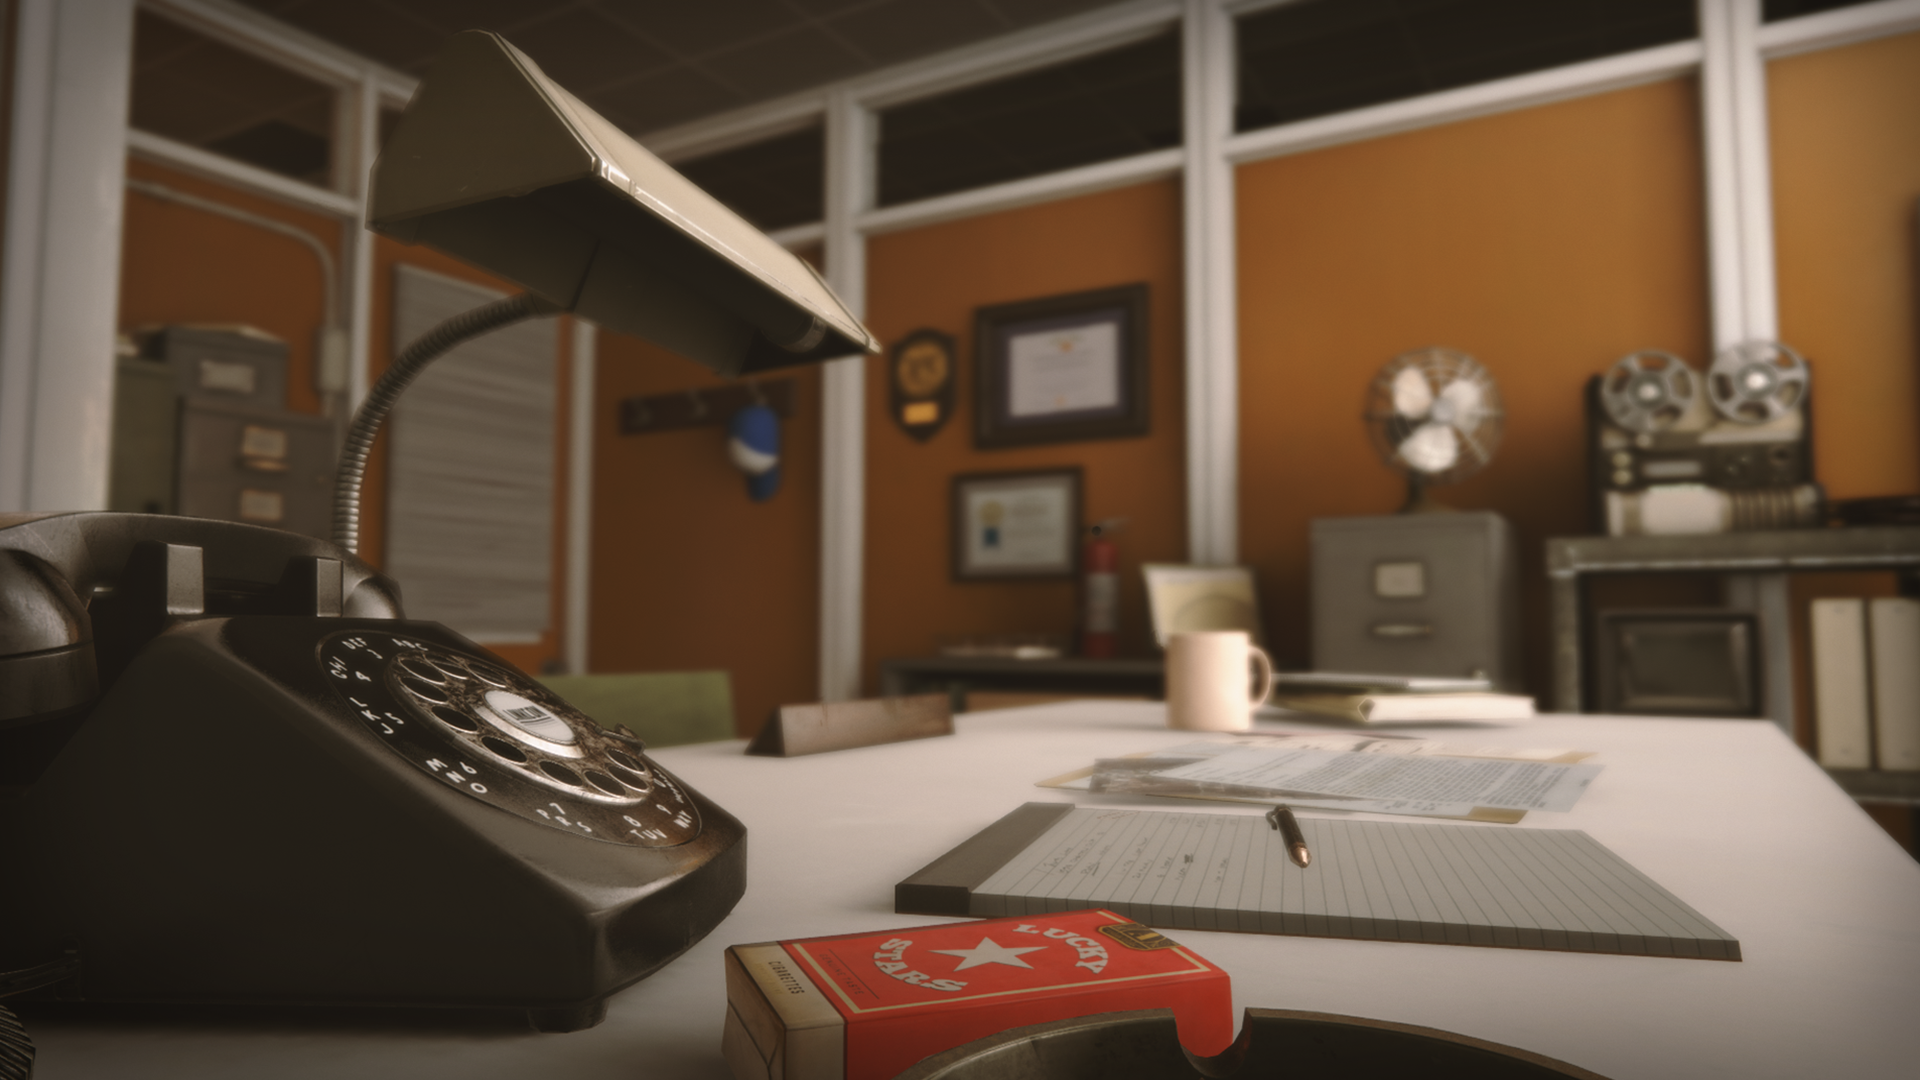 Delicieux Retro Office Environment By Dekogon Studios In Environments   UE4  Marketplace